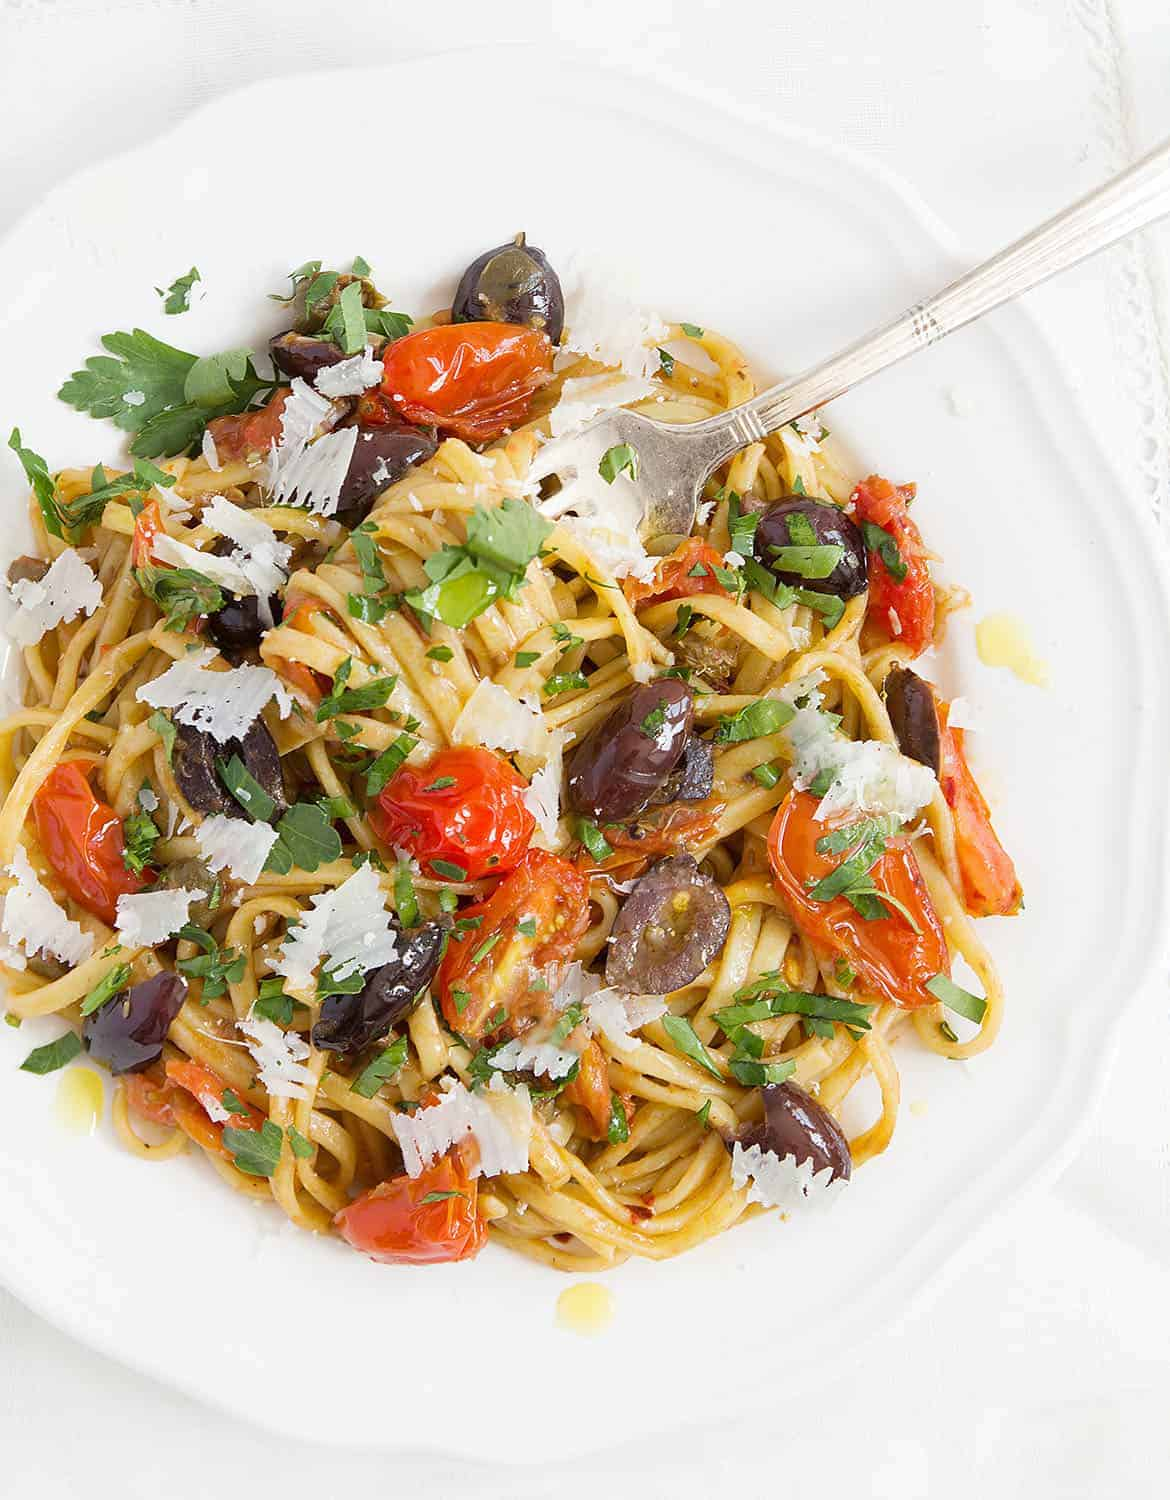 Quick pasta recipe with olives, tomatoes, parsley leaves on a white plate.